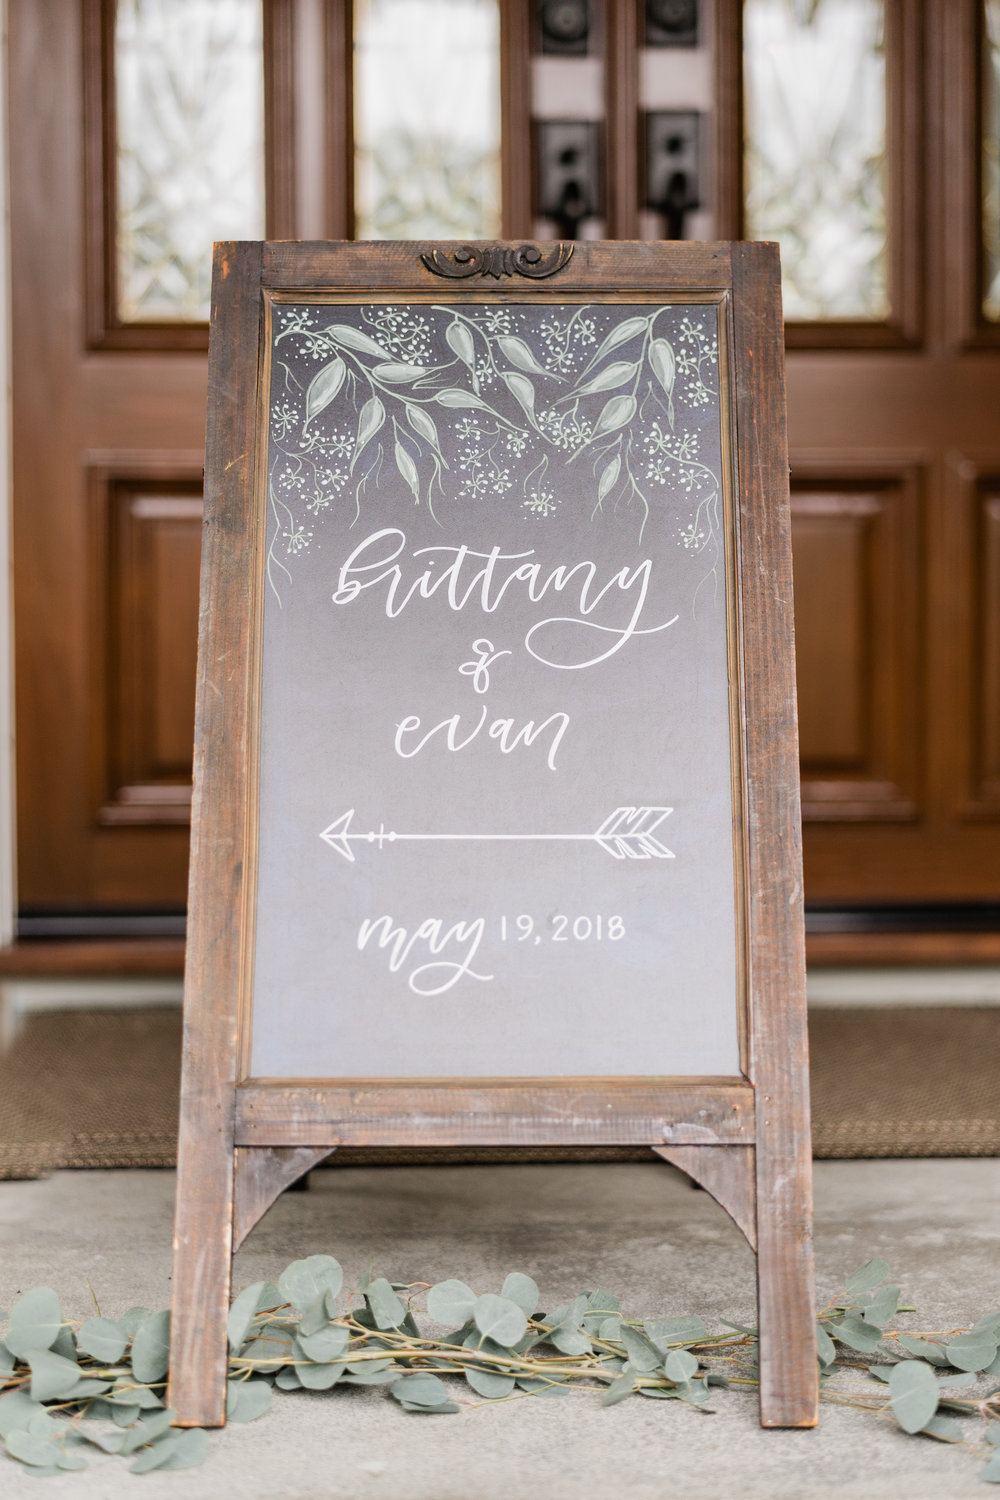 Brittany + Evan - Details - Hitched Photo15.JPG